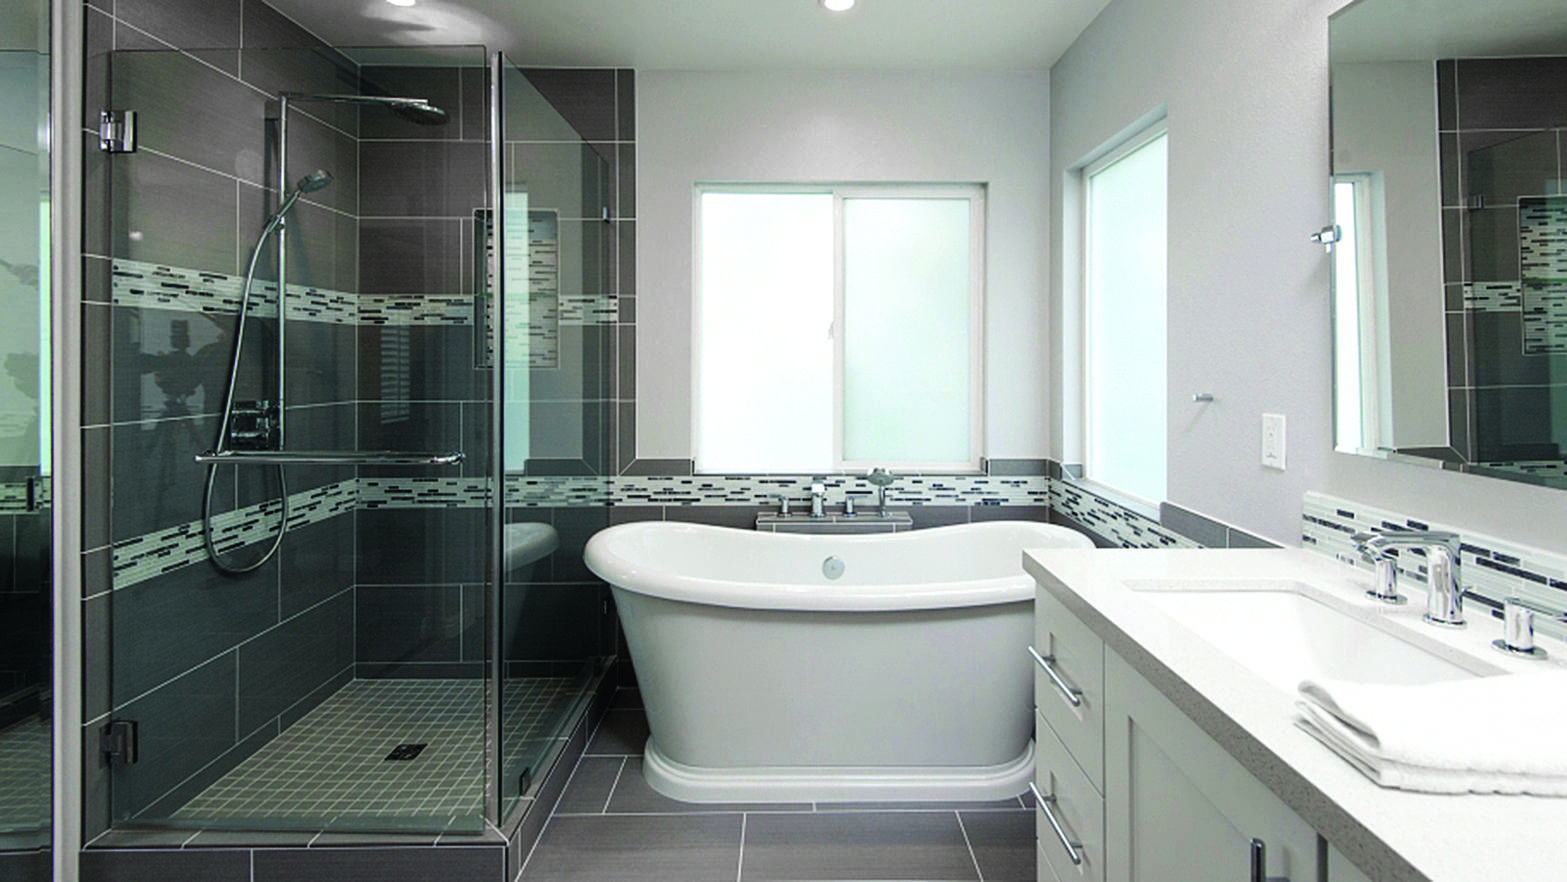 Charmant How Much Does Bathroom Tile Installation Cost?